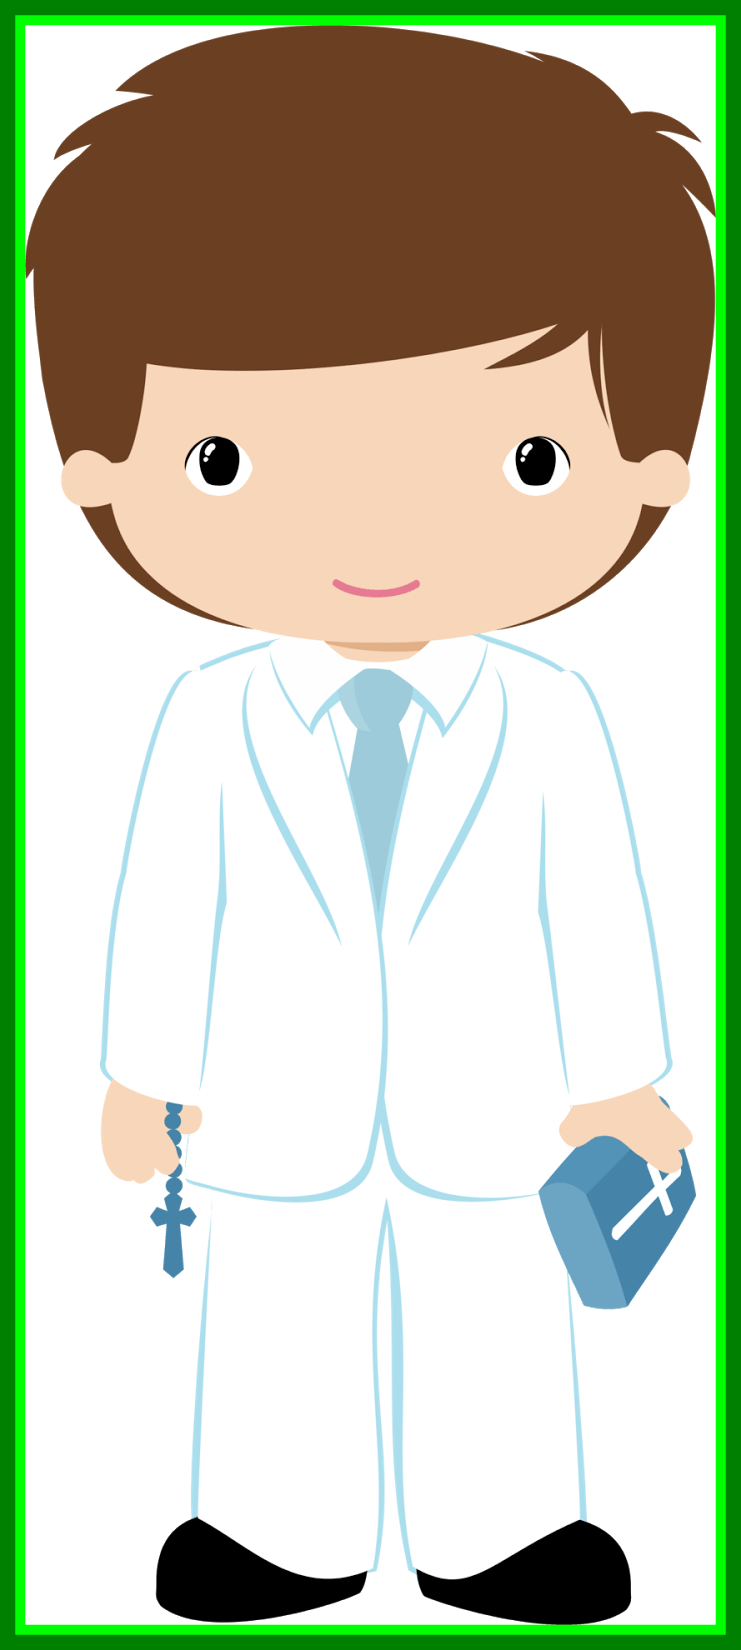 Astonishing fist communion png. Clothing clipart cool clothes